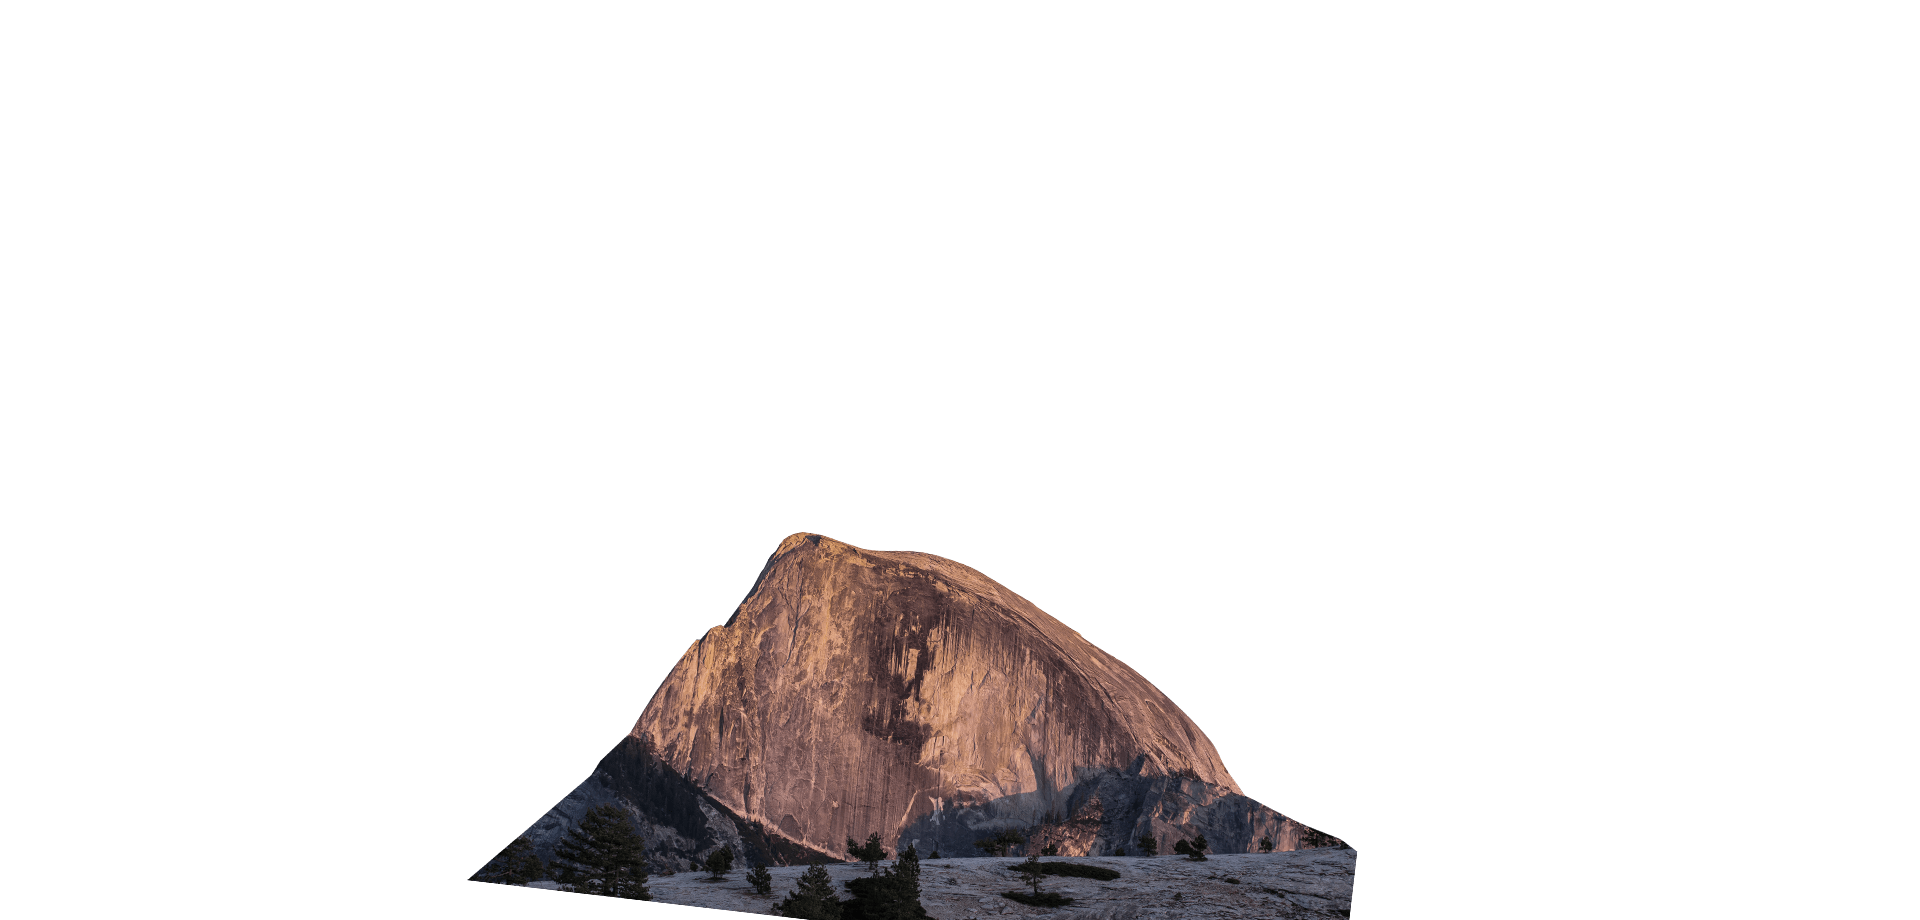 Tied to be free